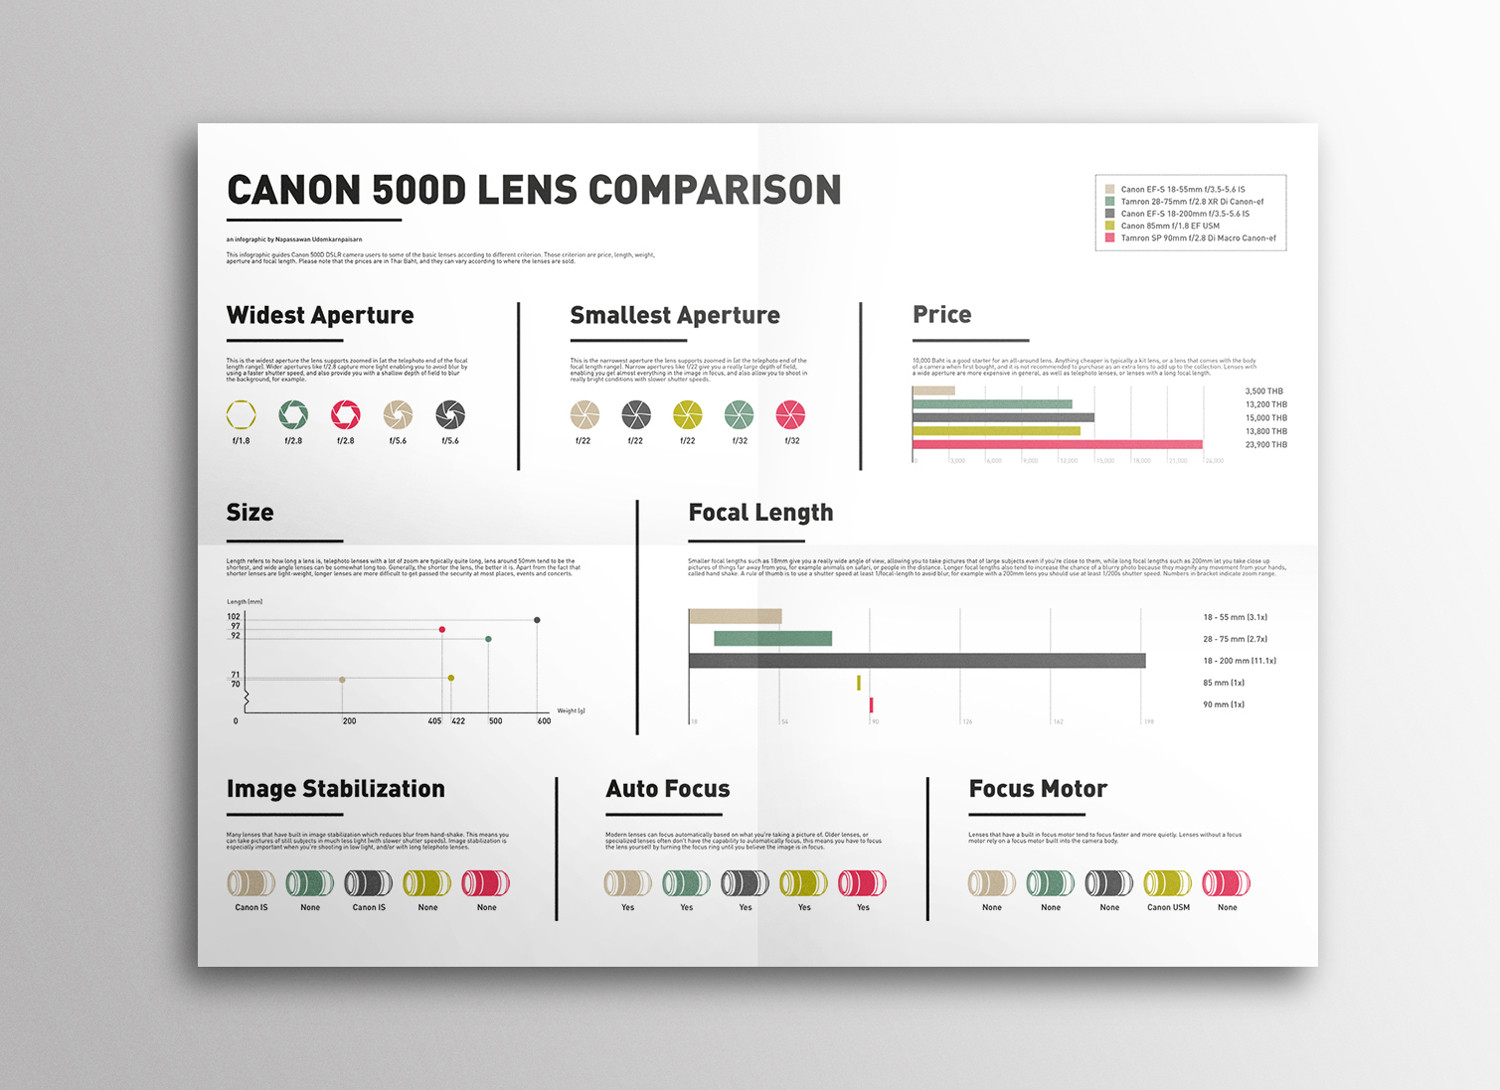 Canon 500D Lens Comparison Infographic